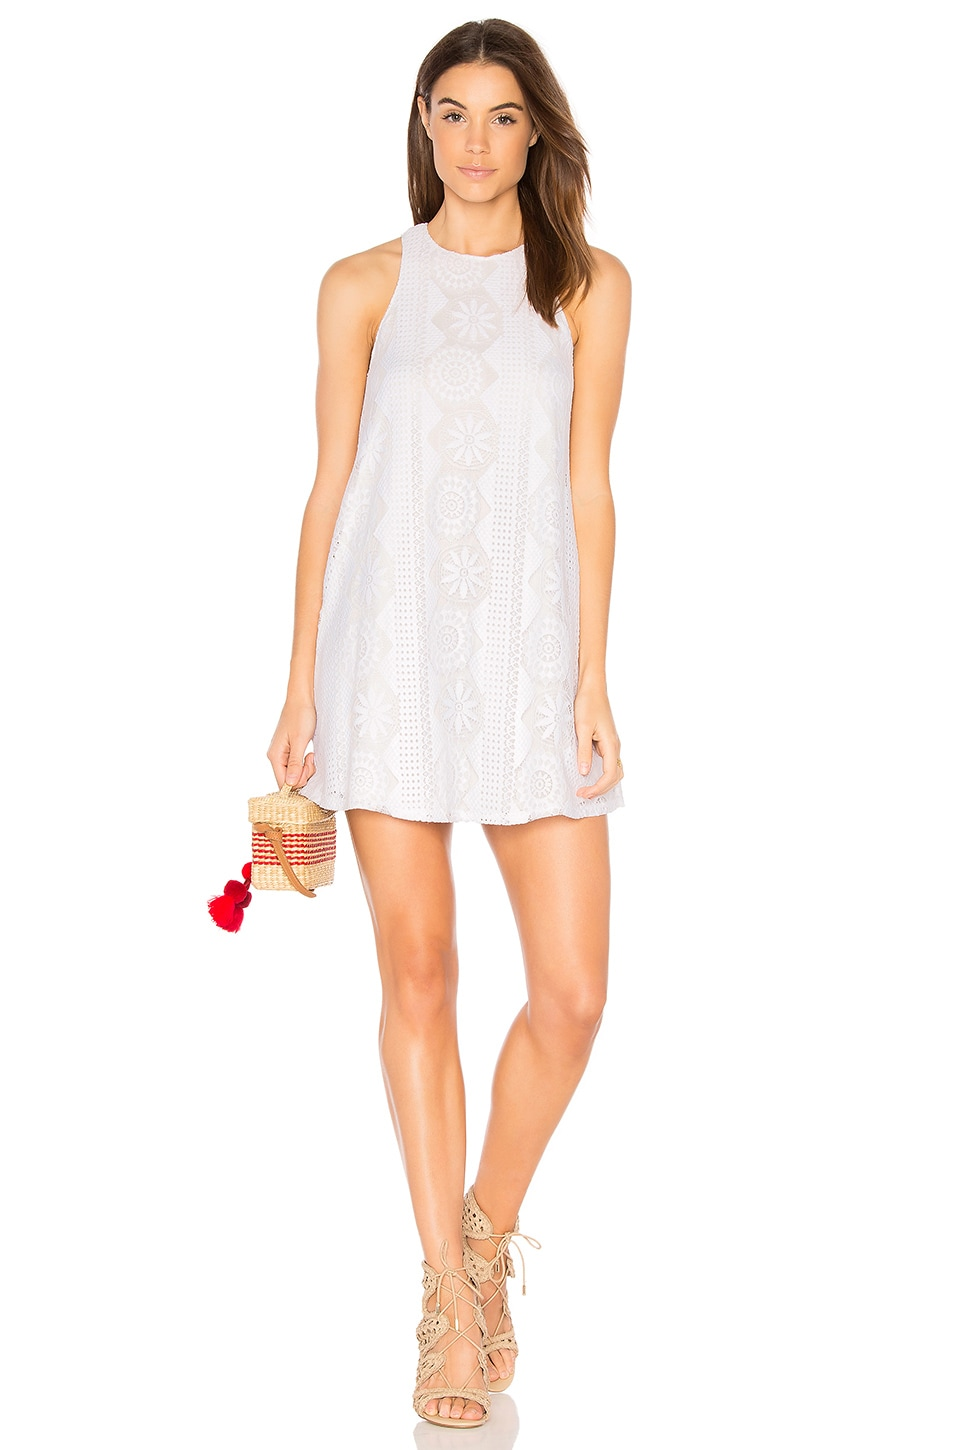 Show Me Your Mumu Ritzy Dress in Flower Power Lace White